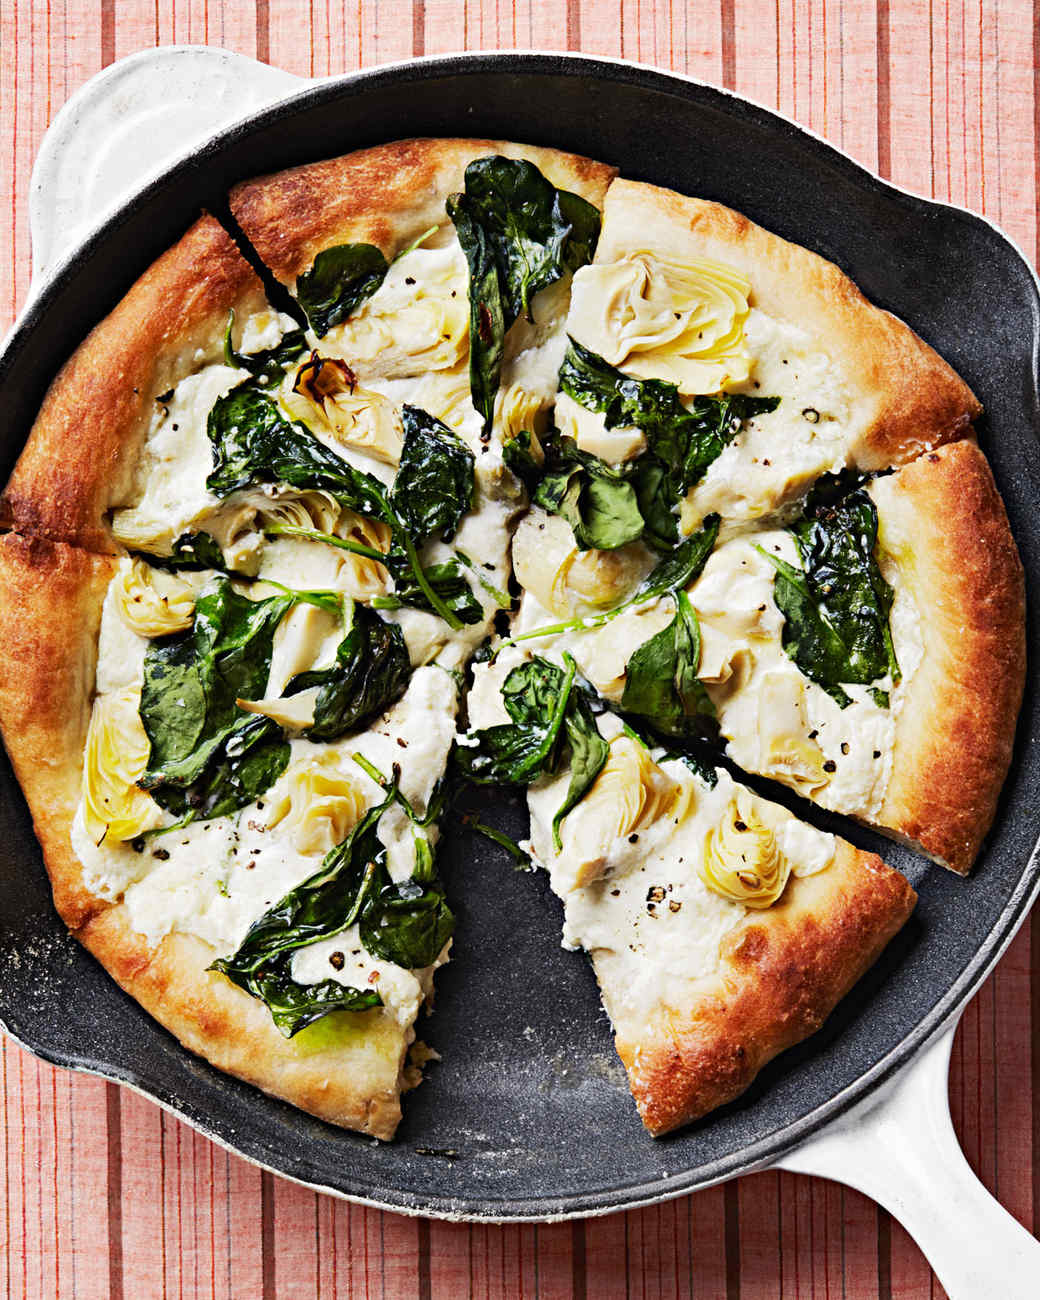 Artichoke-and-spinach-skillet-pizza-102817879_vert